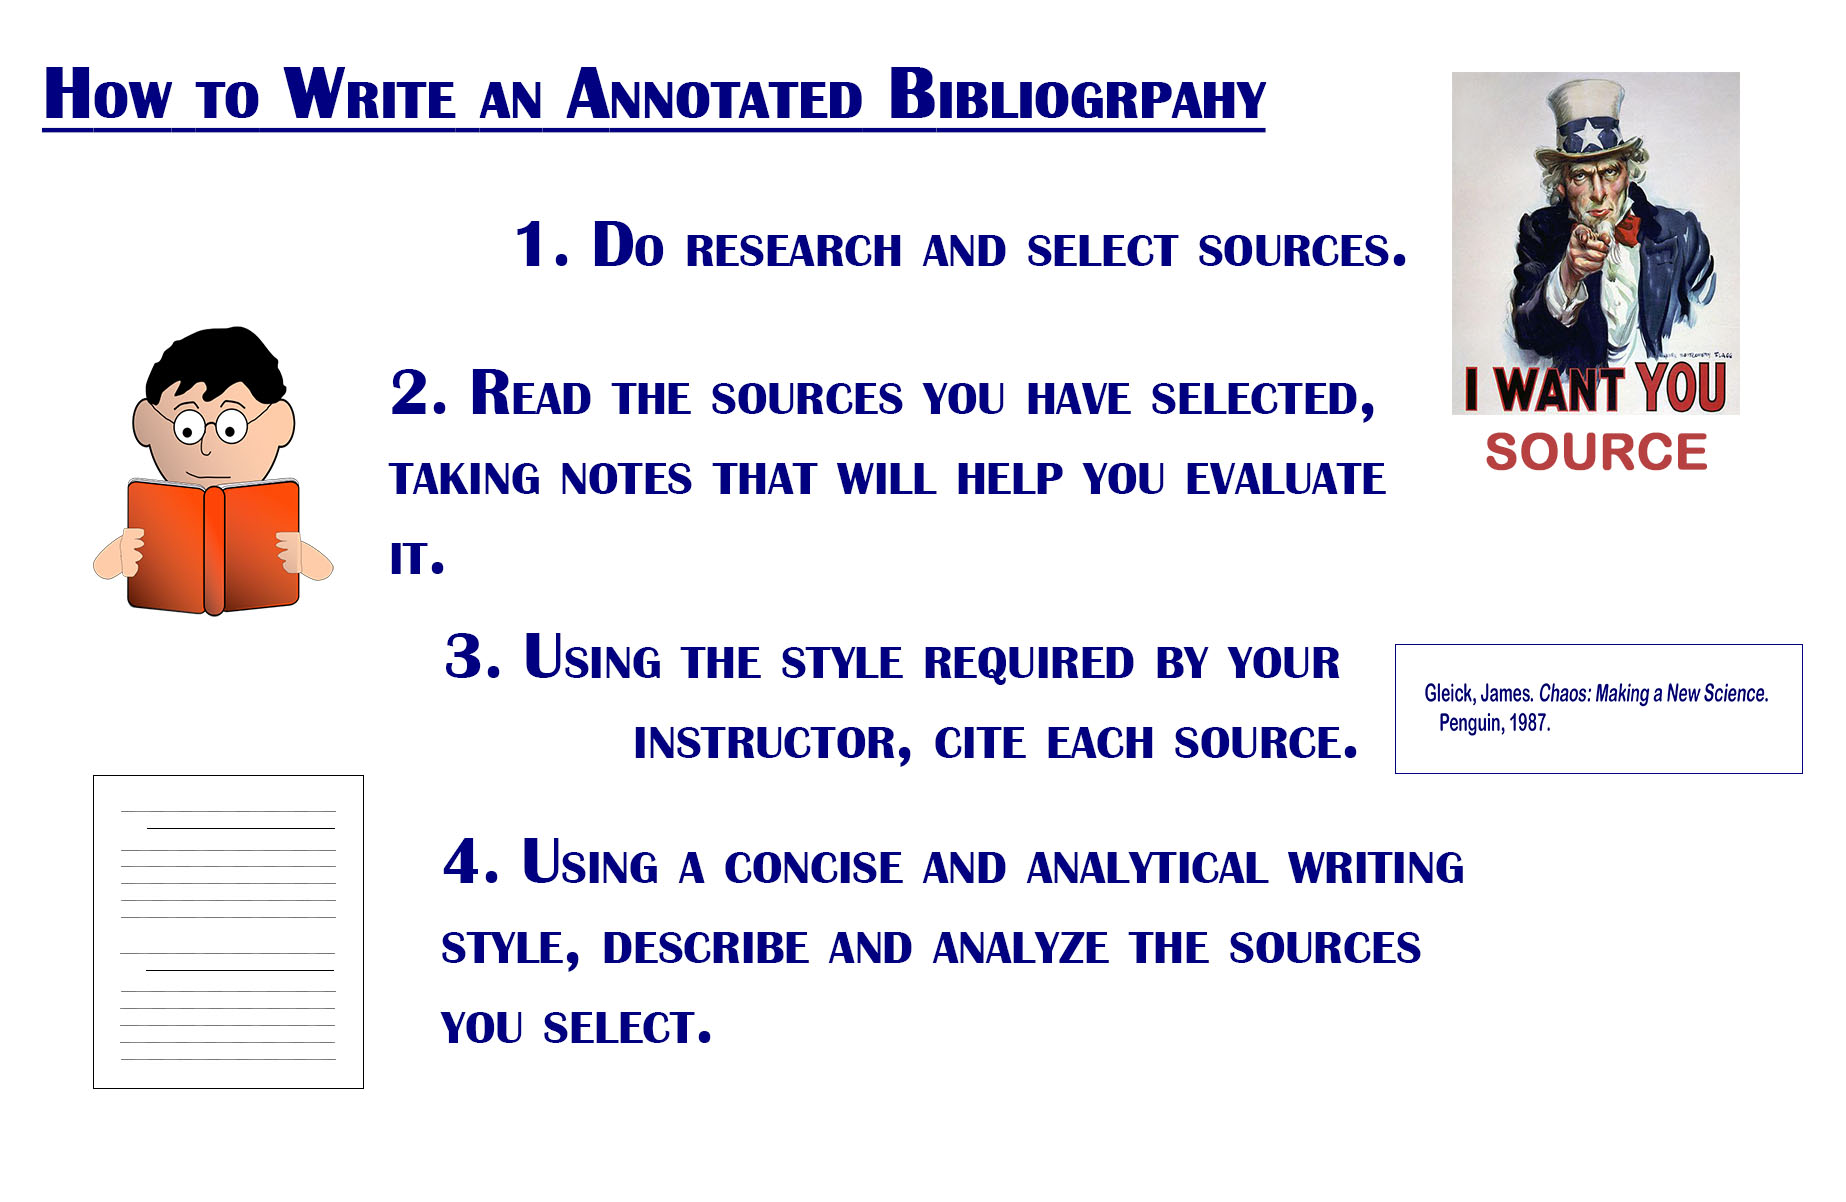 How to write an annotated bibliography: 1. Do the research and select sources; 2. Read the sources that you have selected, taking notes that will help you evaluate it; 3. Using the style required by your instructor, cite each source; 4. Using a concise and analytical writing style, describe and analyze the sources you select